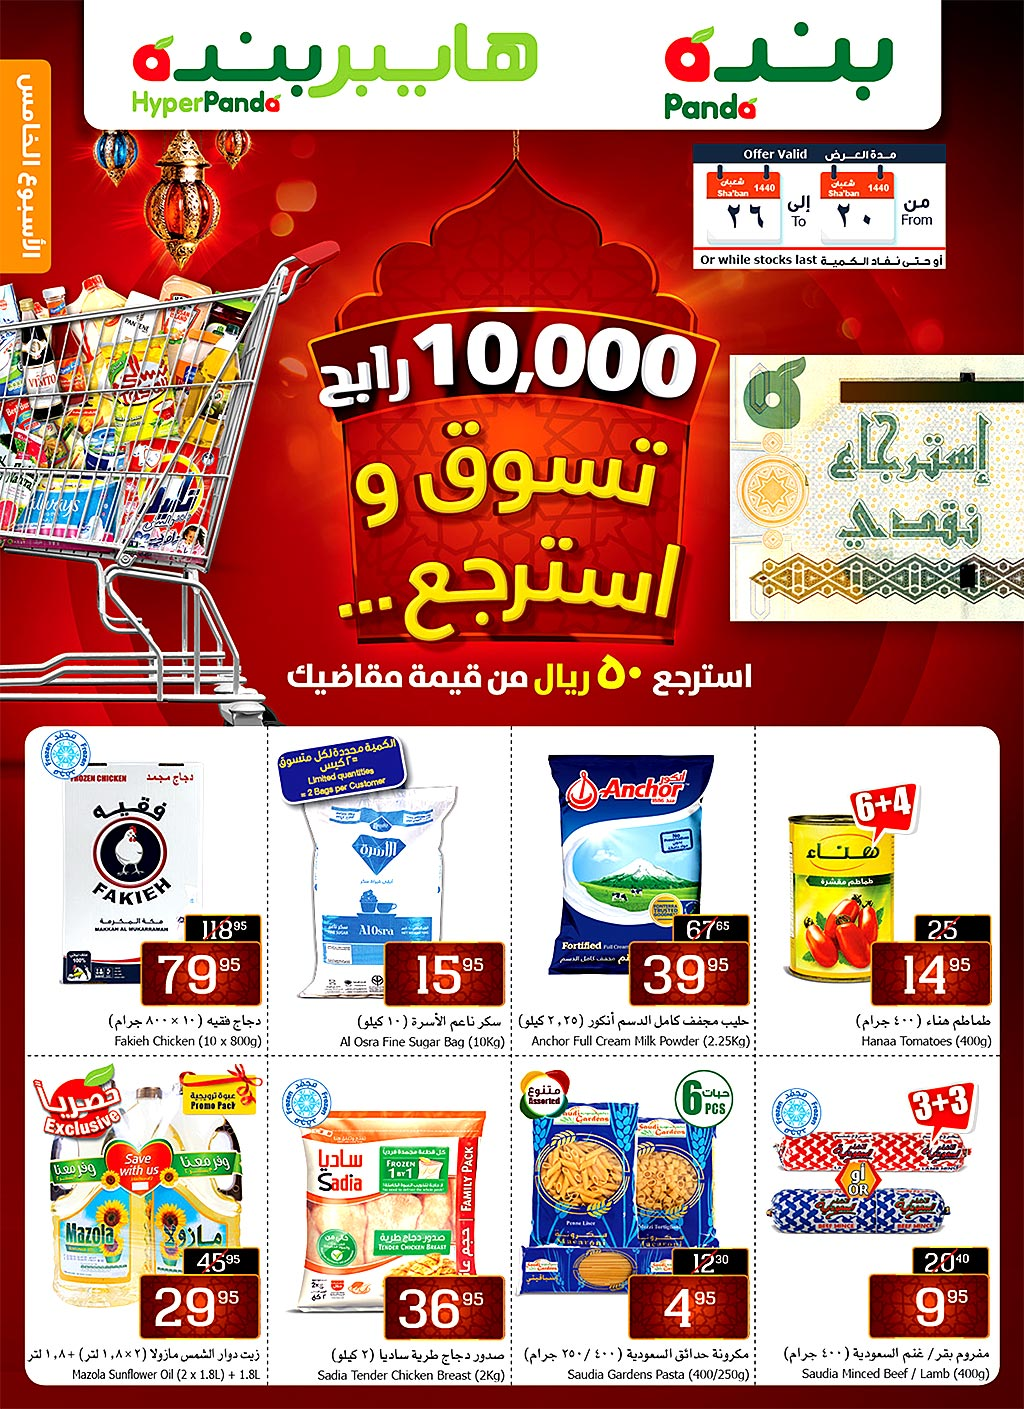 600a2dae9 hyperpanda offers from 25apr to 1may 2019 page number 1 عروض هايبر بنده من  25 إبريل